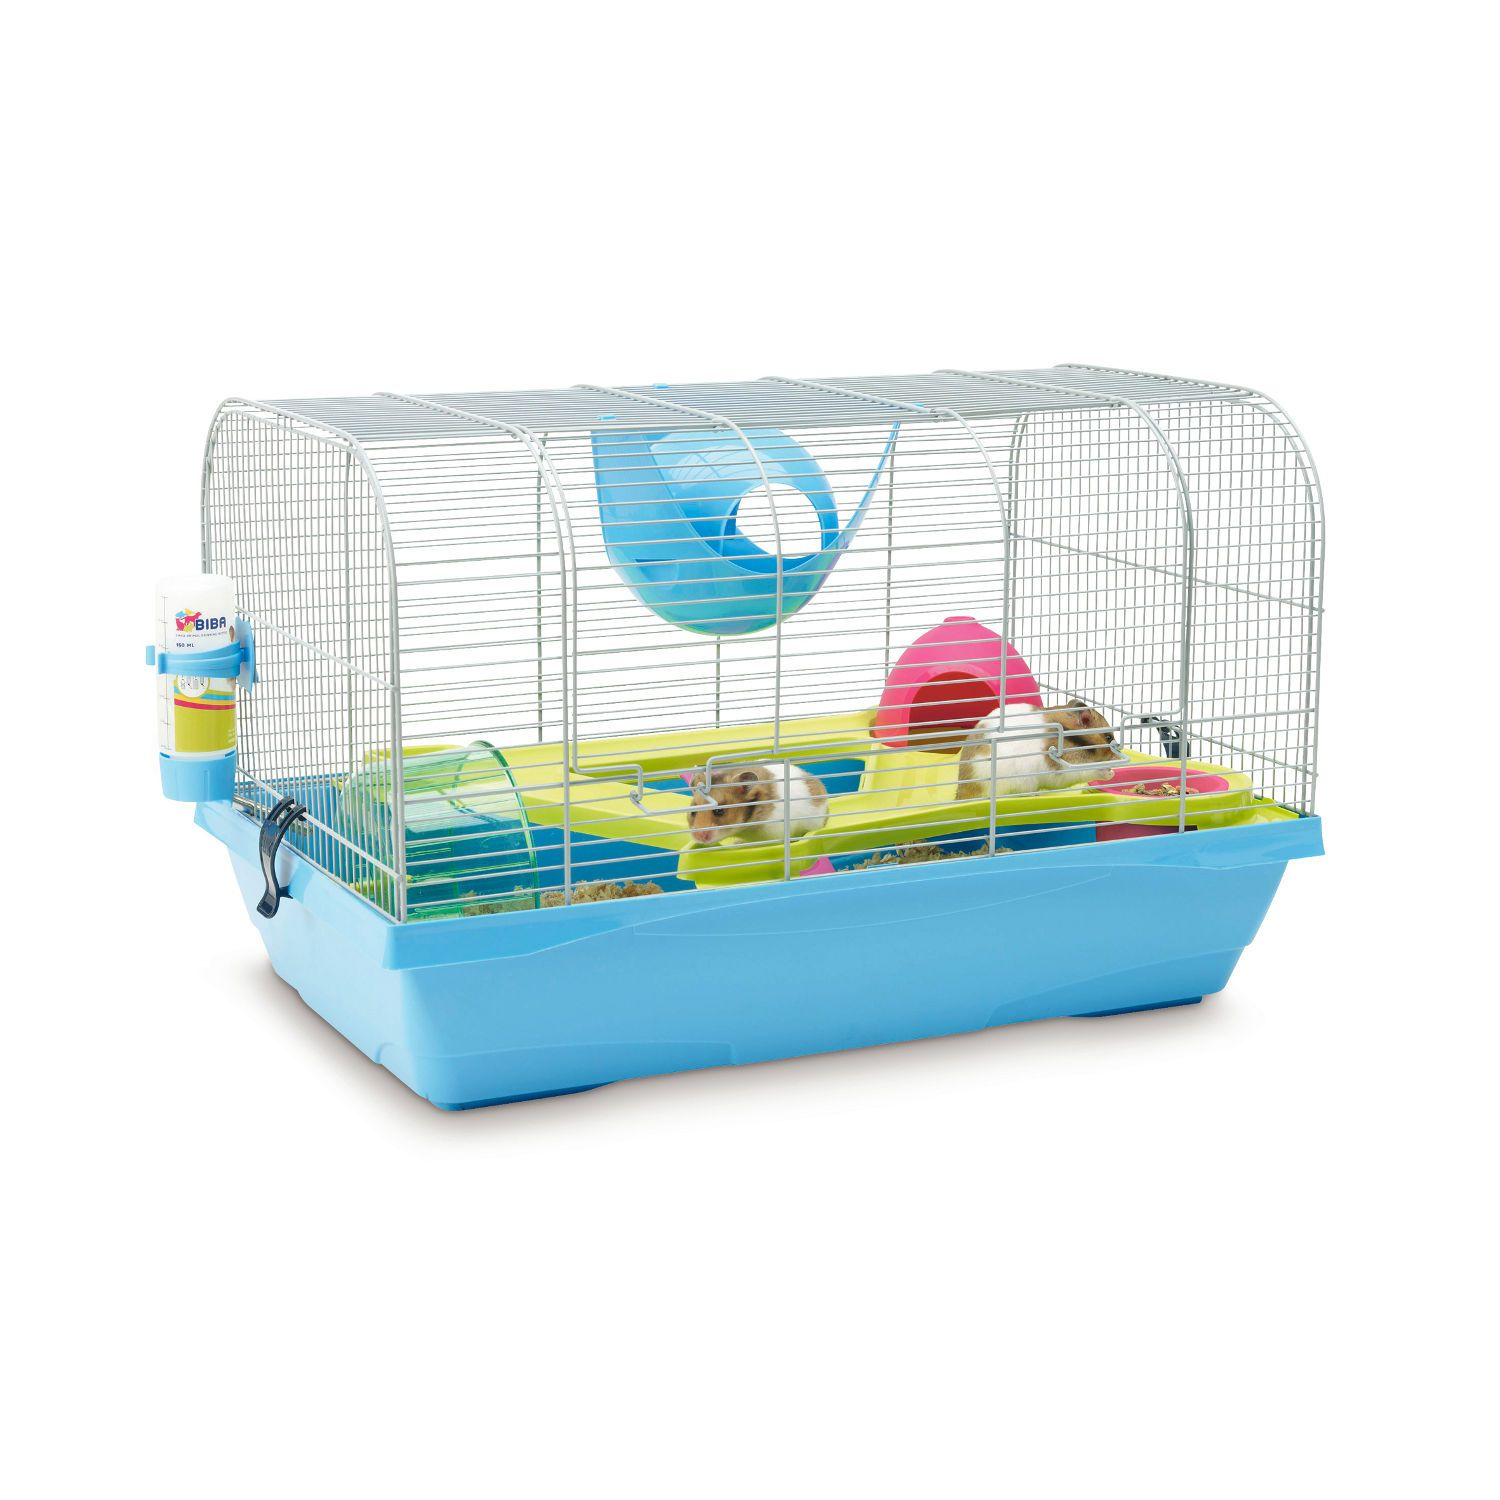 Savic Bristol Hamster Cage Next Day Delivery Savic Bristol Hamster Cage Hamster Cage Cool Hamster Cages Hamster Cages